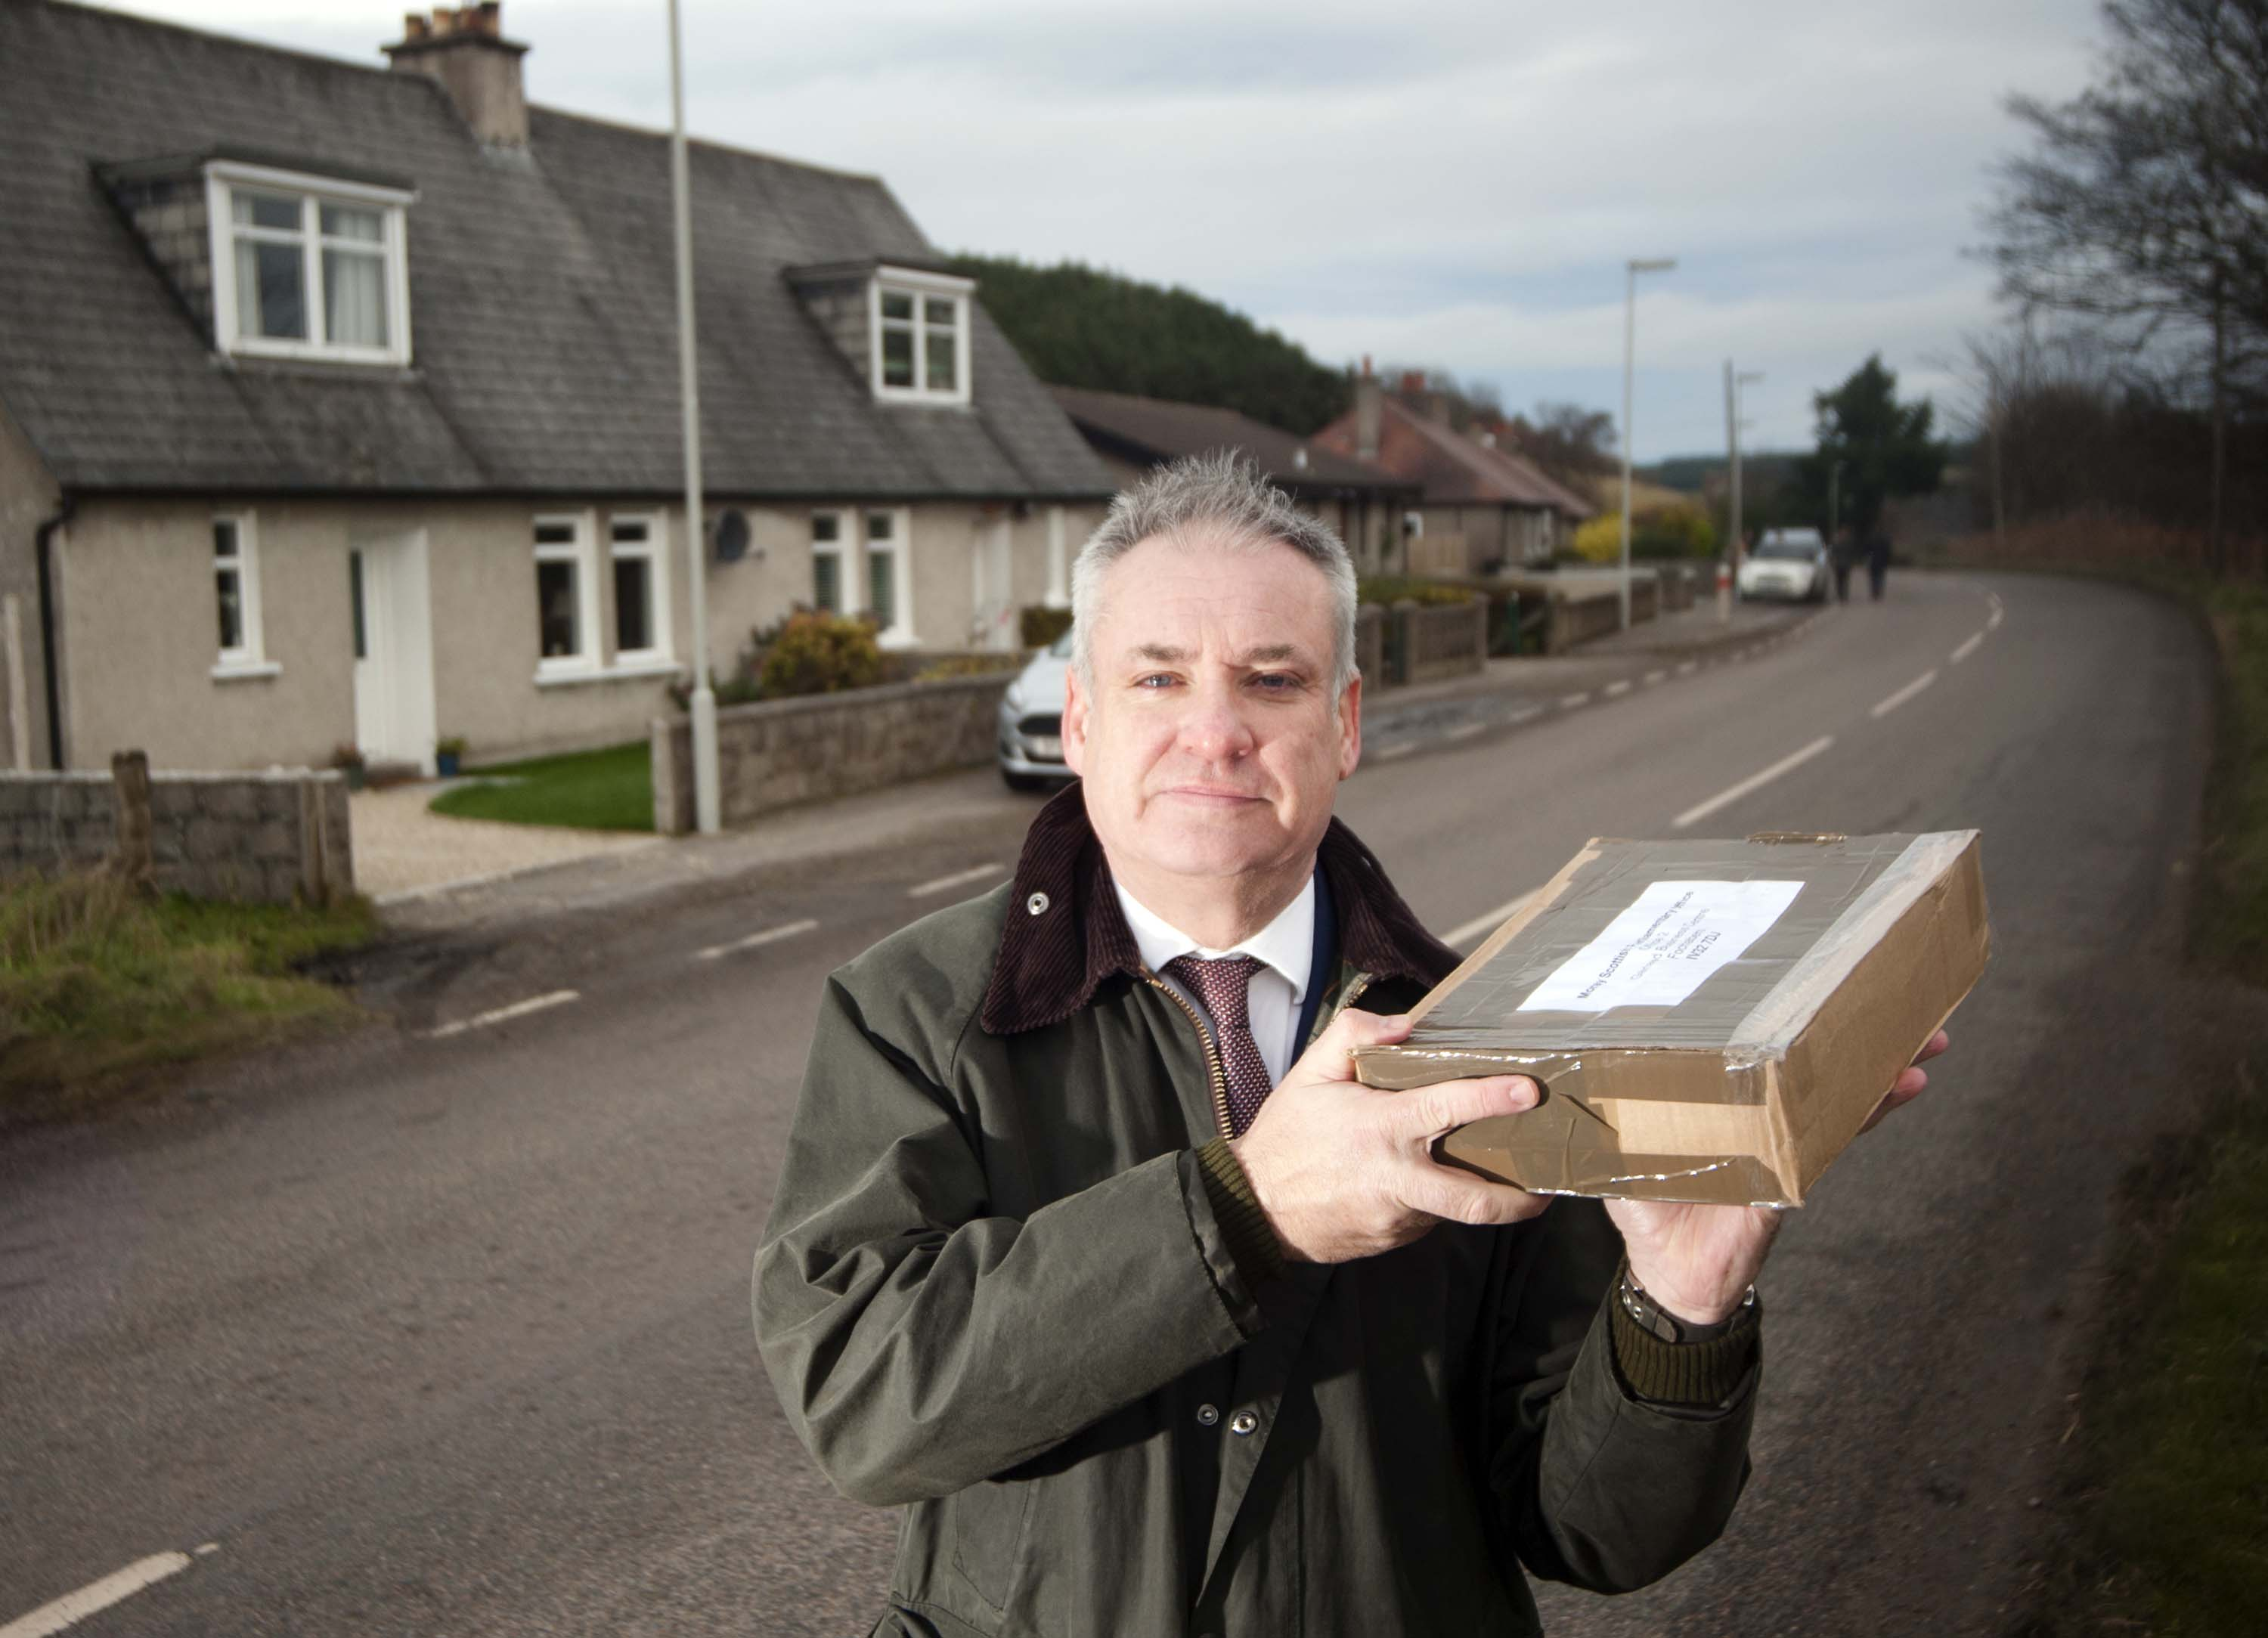 MSP Richard Lochhead, visit's the small collection of houses in the Orton aria near Fochabers, it borders the IV and AB postcodes, and is considered to be the edge of mainland Scotland by post and courier services even though it is in the heart of Moray.     Photo by Michael Traill						 9 South Road Rhynie Huntly AB54 4GA  Contact numbers Mob	07739 38 4792 Home	01464 861425